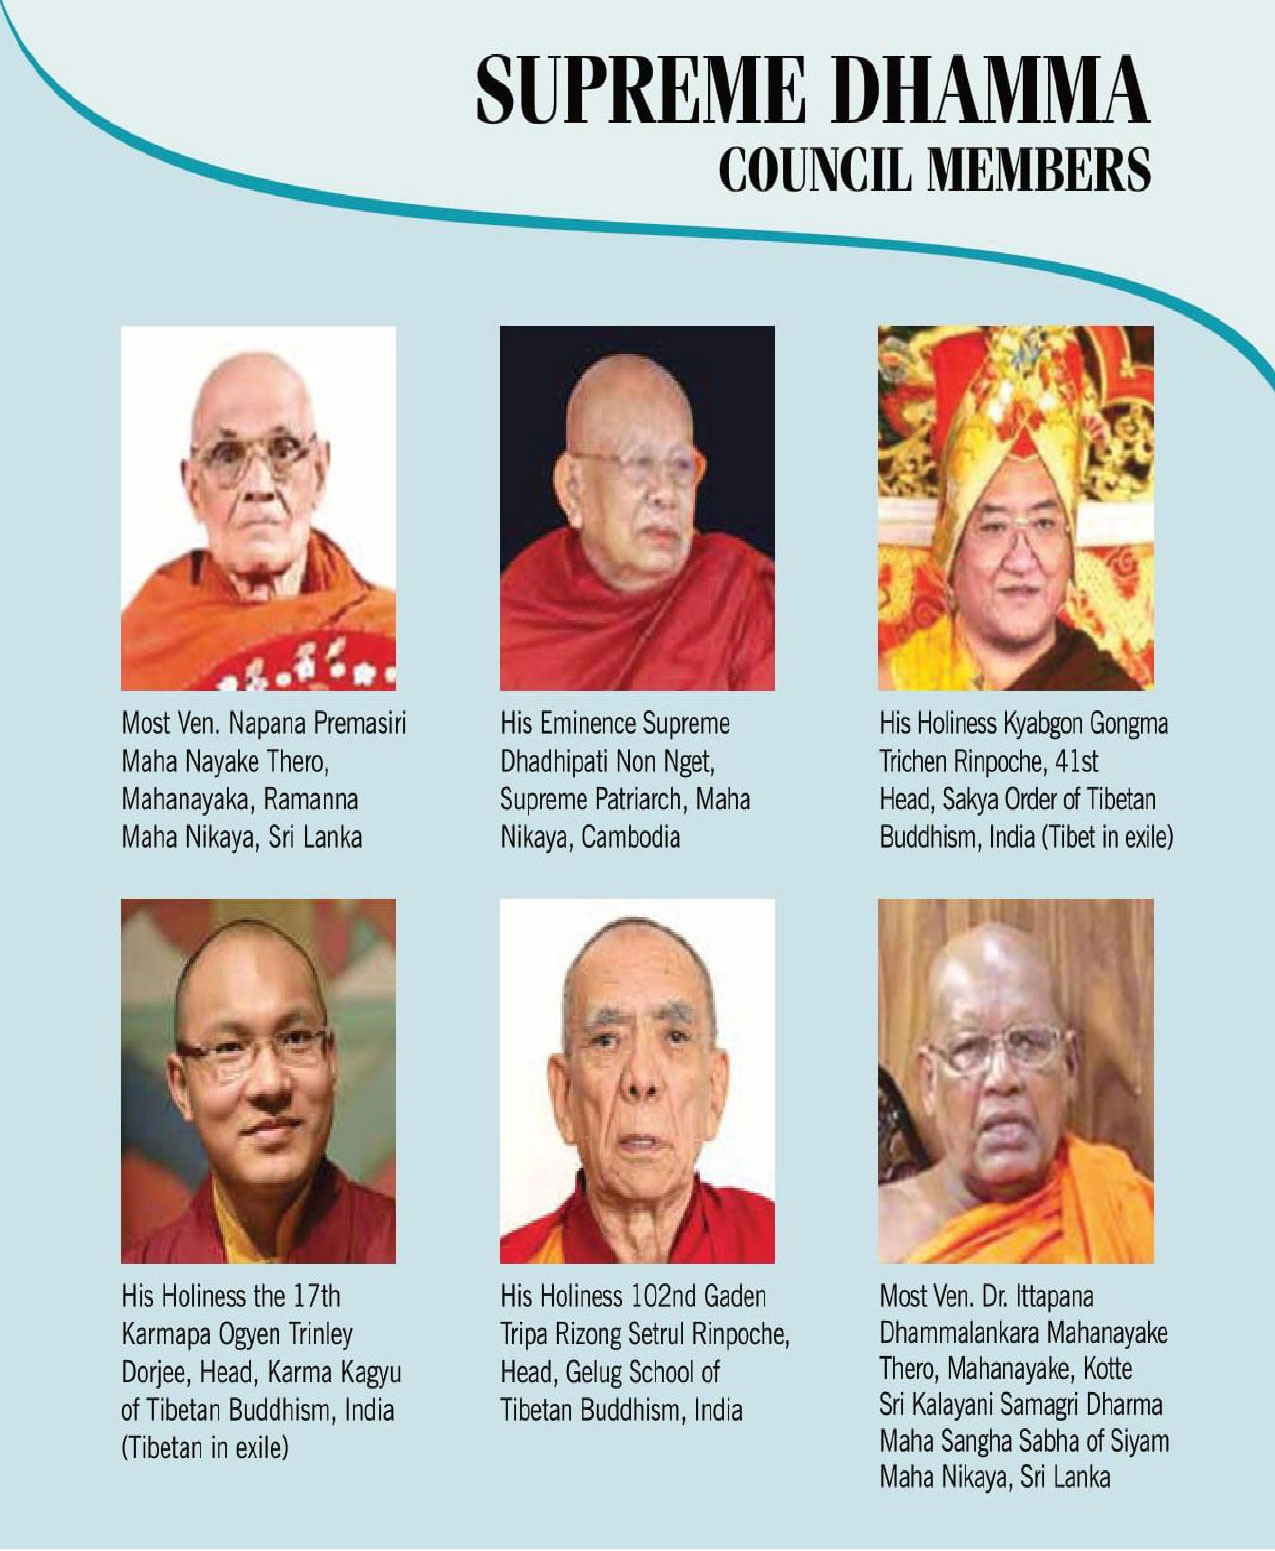 Supreme Dhamma Council